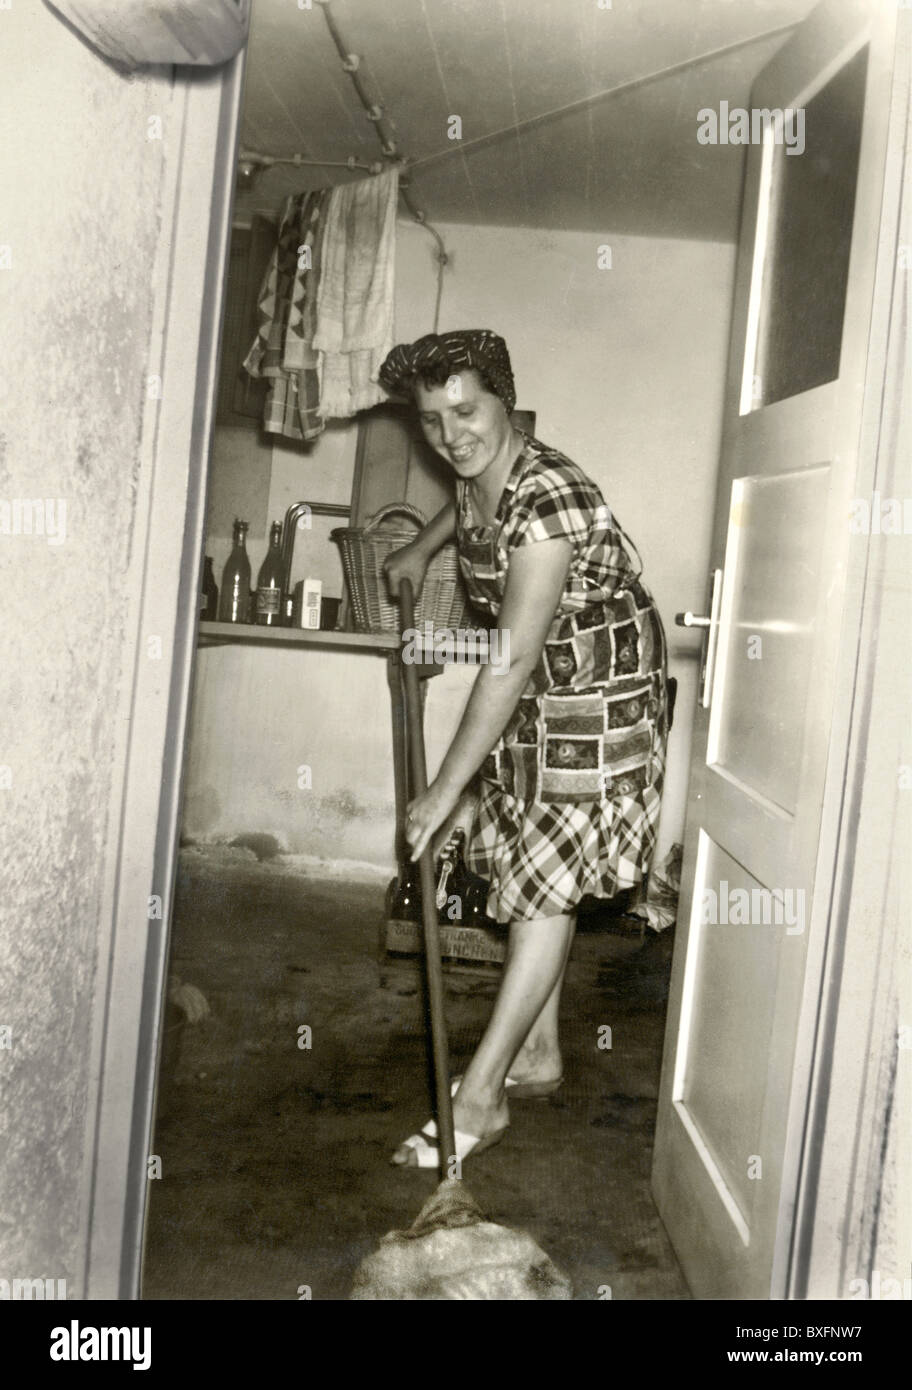 1950s Housewife Cleaning Stock Photos  1950s Housewife